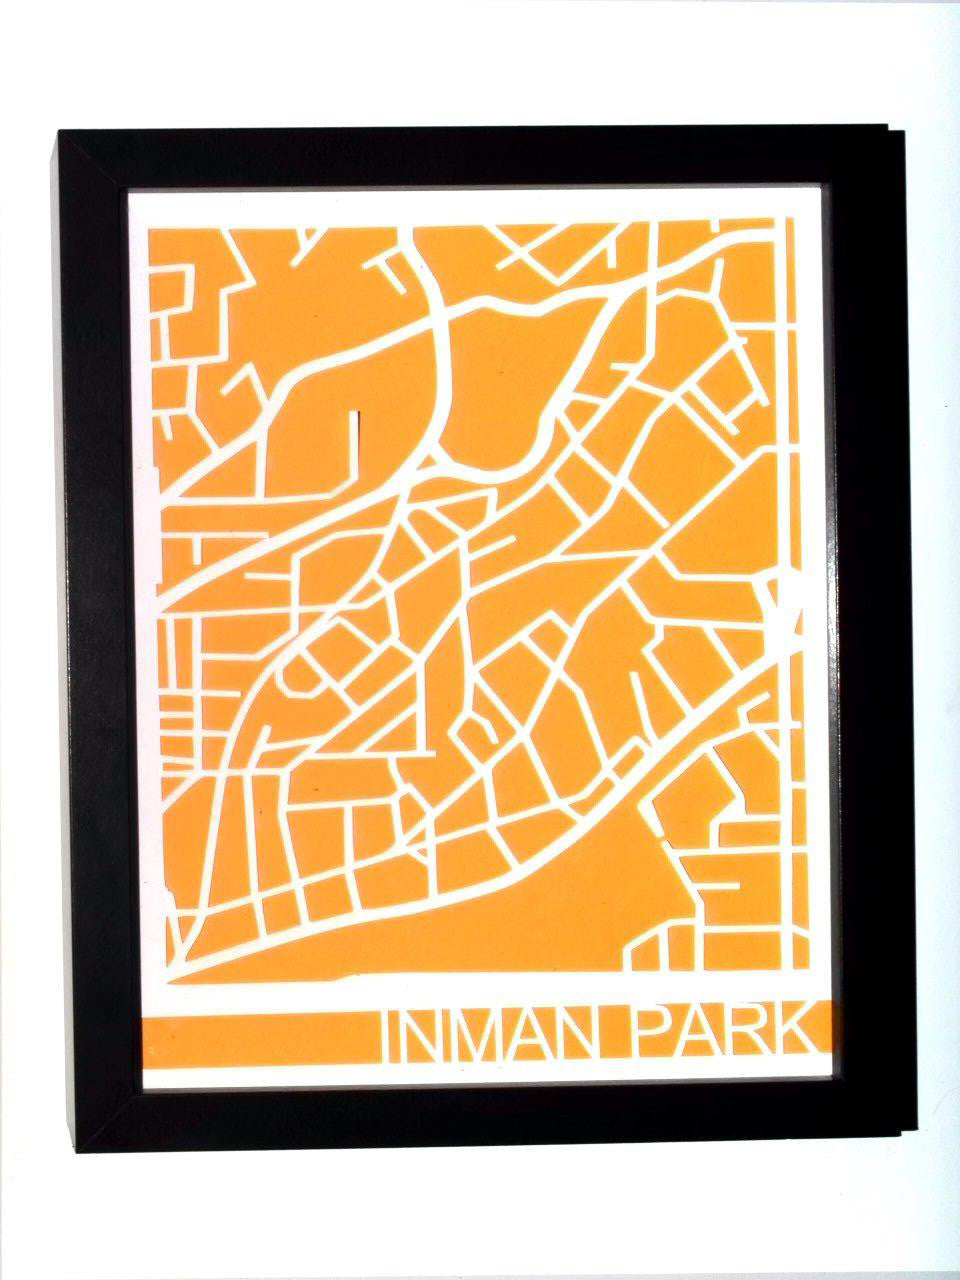 Inman Park Neighborhood Paper Cut Map – the beehive